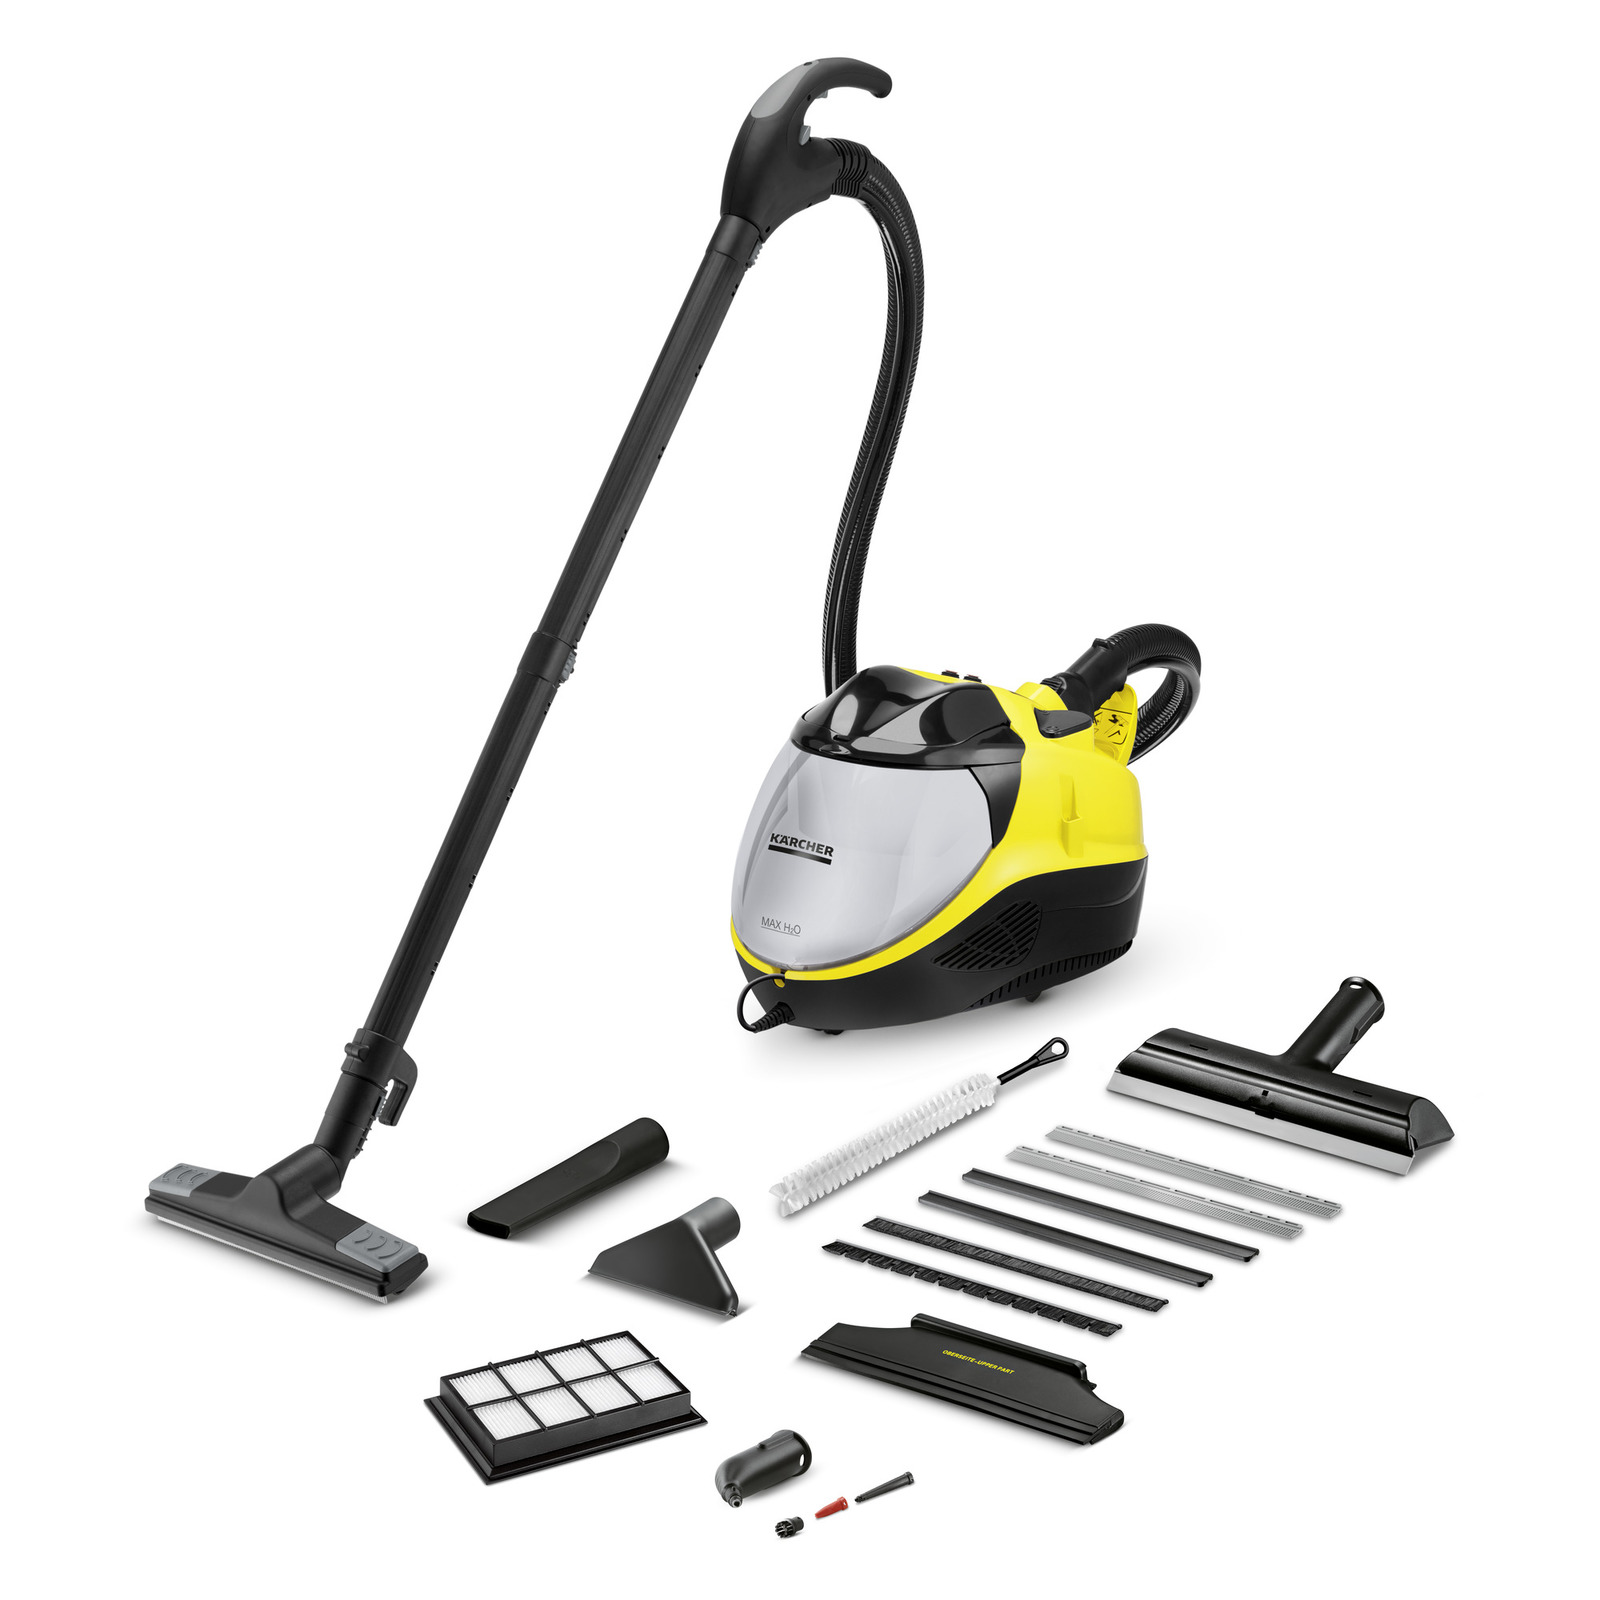 KARCHER 1.439-410.0 - SV7 Steam Vacuum Cleaner